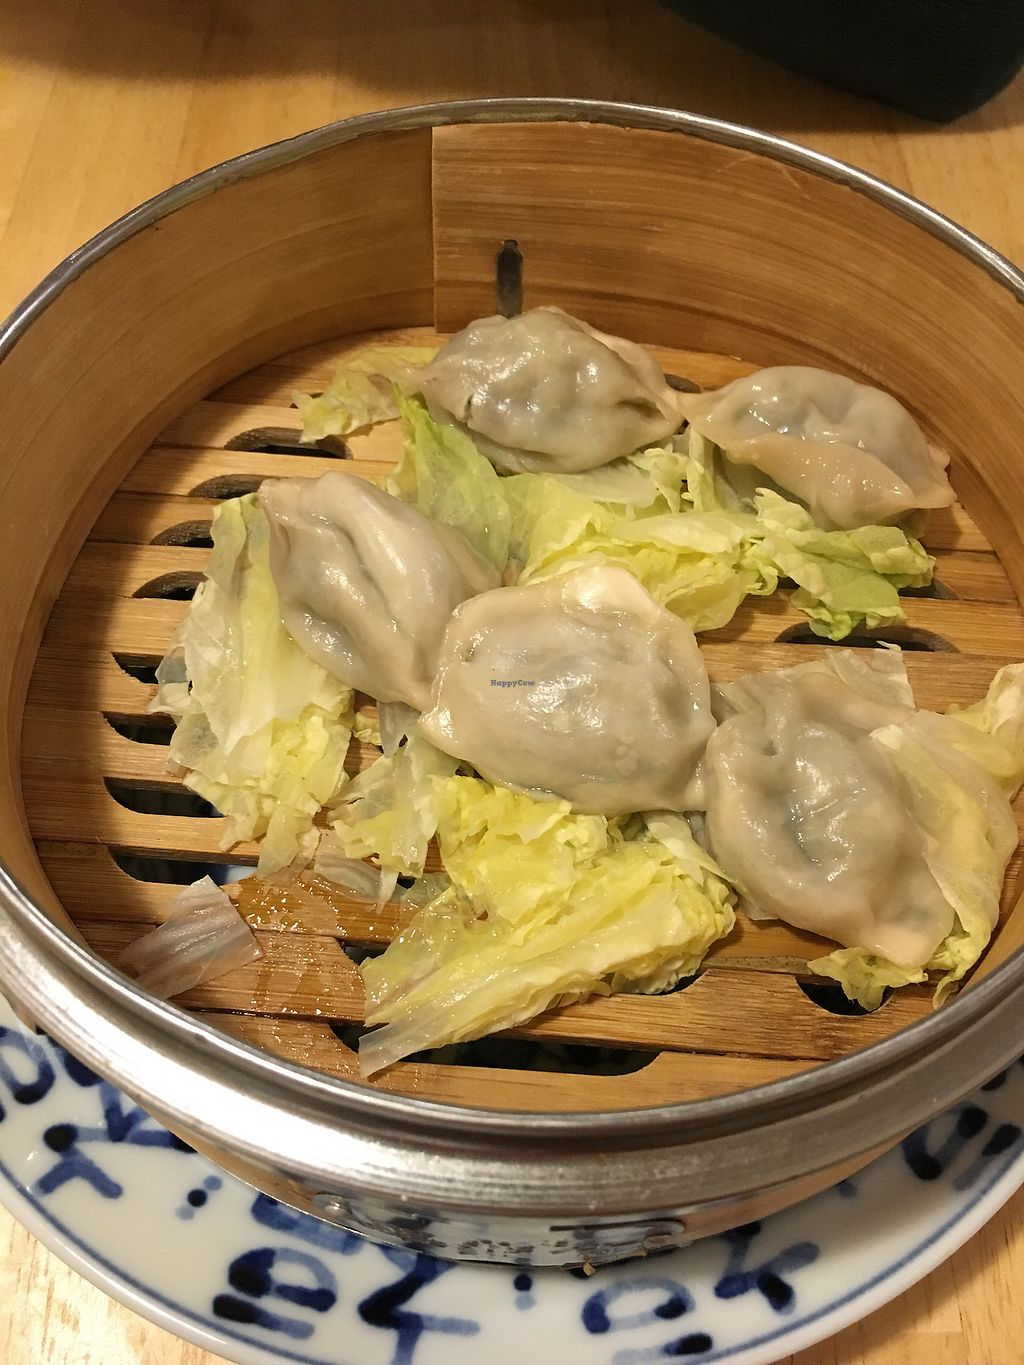 "Photo of Lo Fuo  by <a href=""/members/profile/Siup"">Siup</a> <br/>Steamed vegan dumplings  <br/> April 8, 2018  - <a href='/contact/abuse/image/46161/382301'>Report</a>"